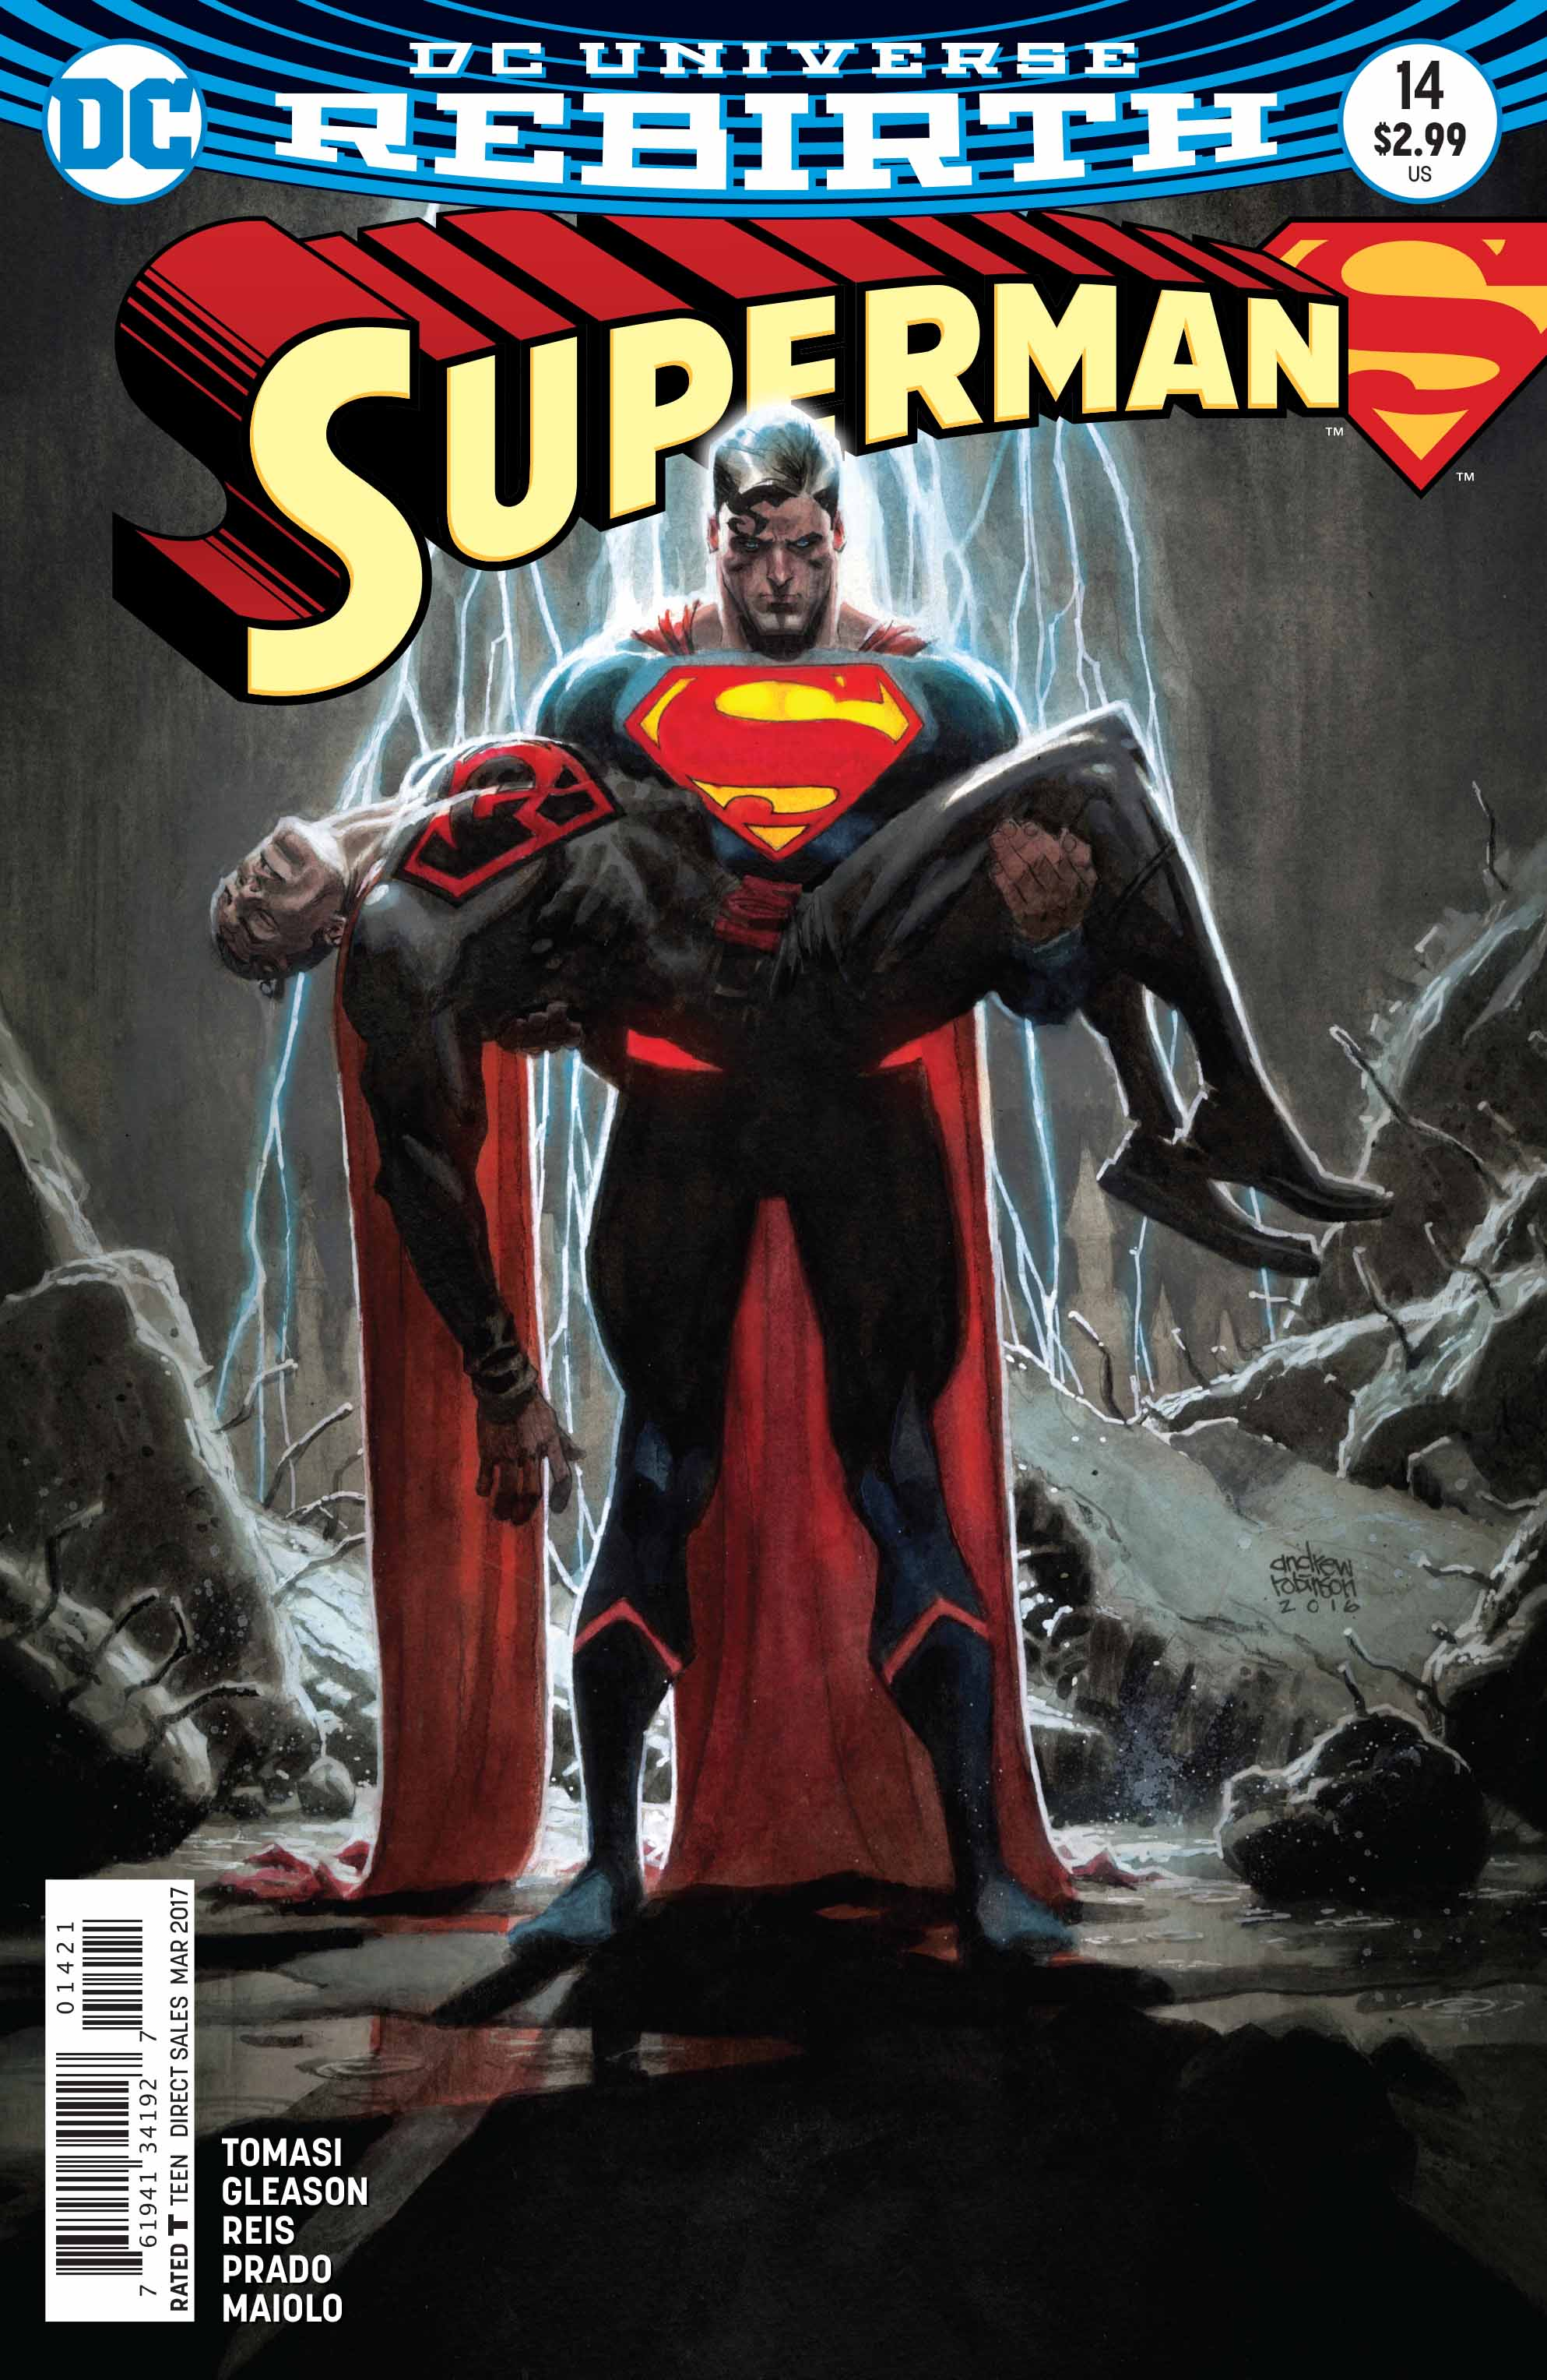 A Red Son Rises In Superman #14